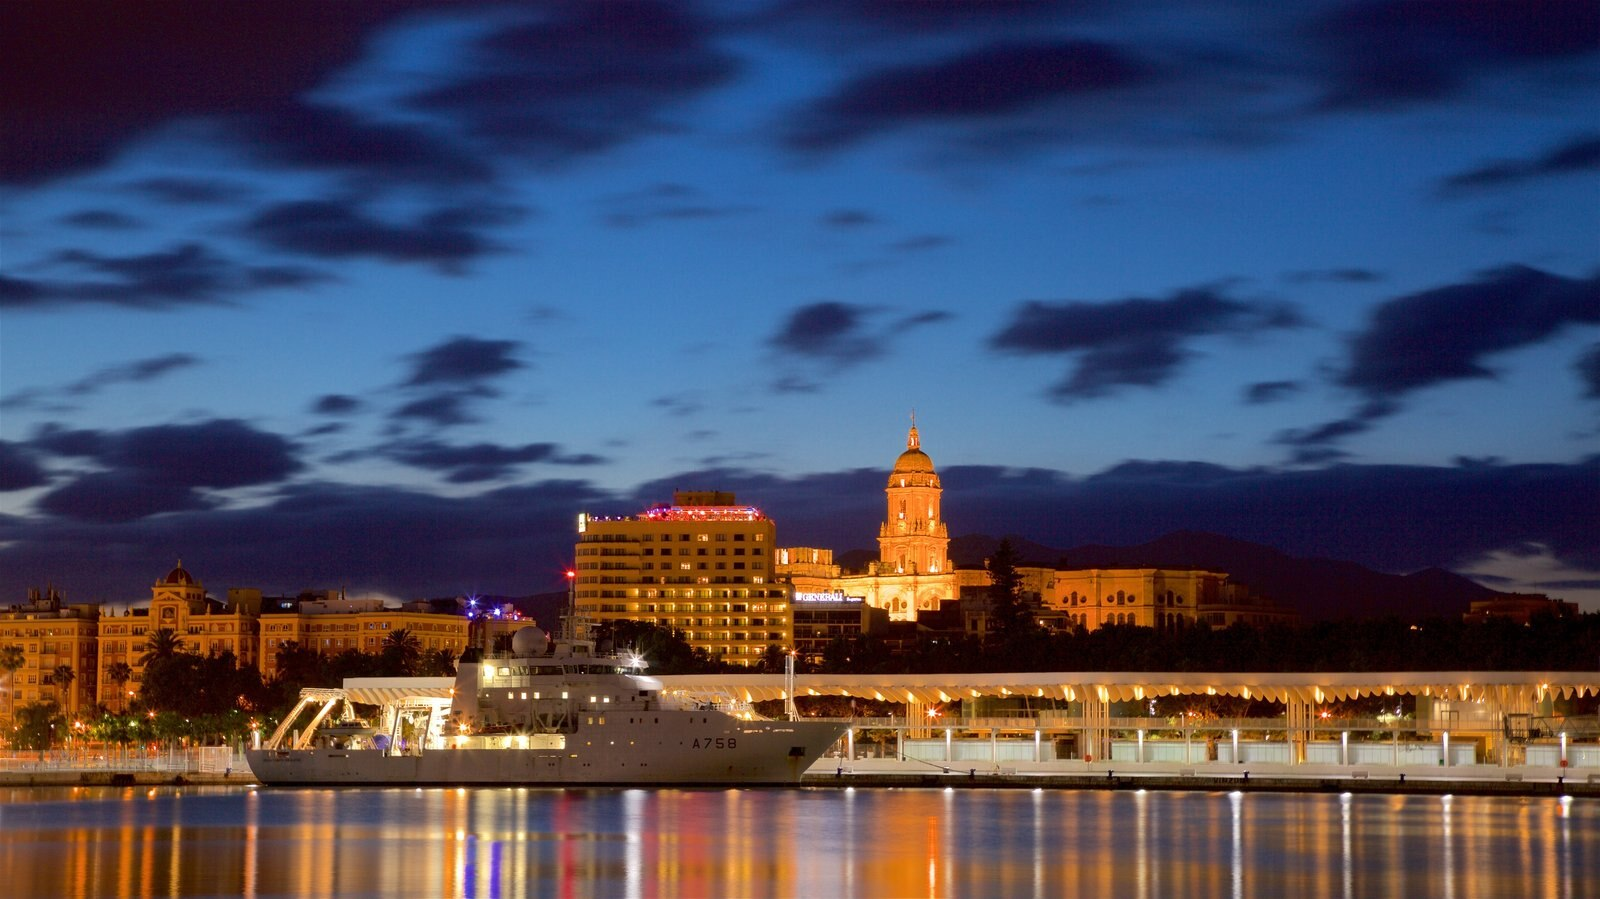 Port of Malaga which includes boating, a city and night scenes